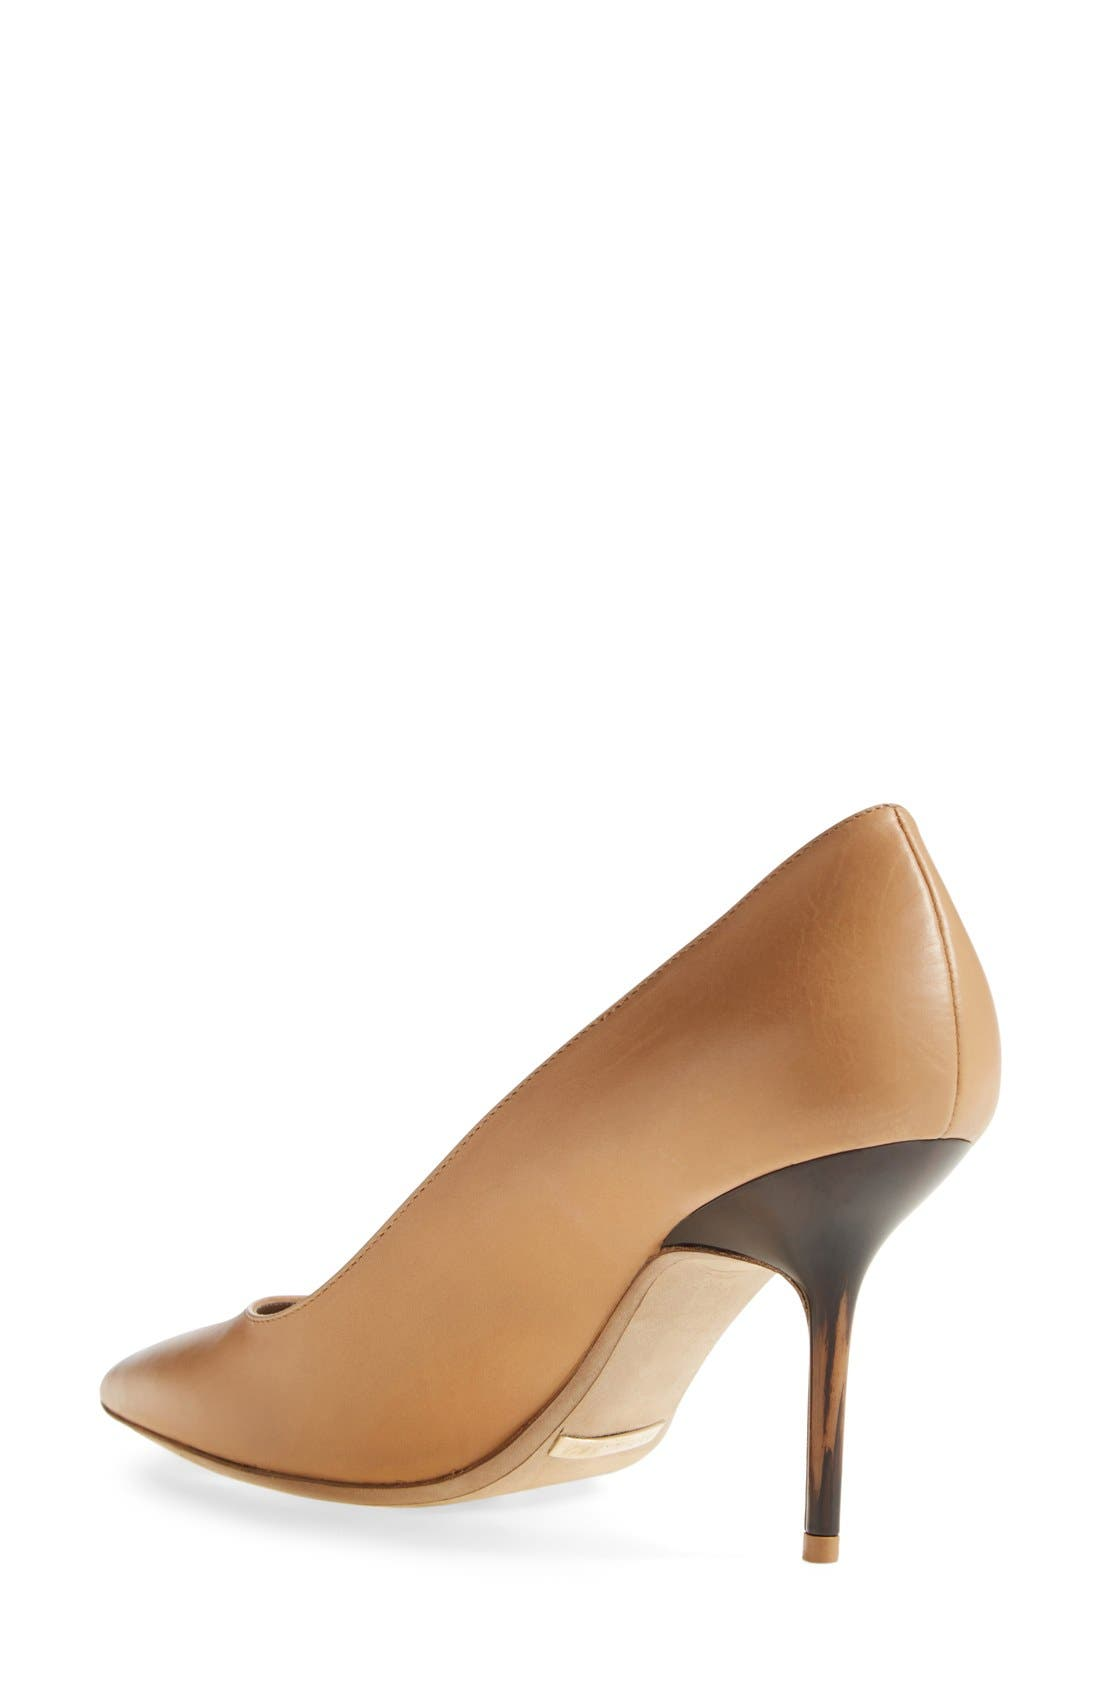 'Mawdesley' Pointy Toe Pump,                             Alternate thumbnail 2, color,                             250